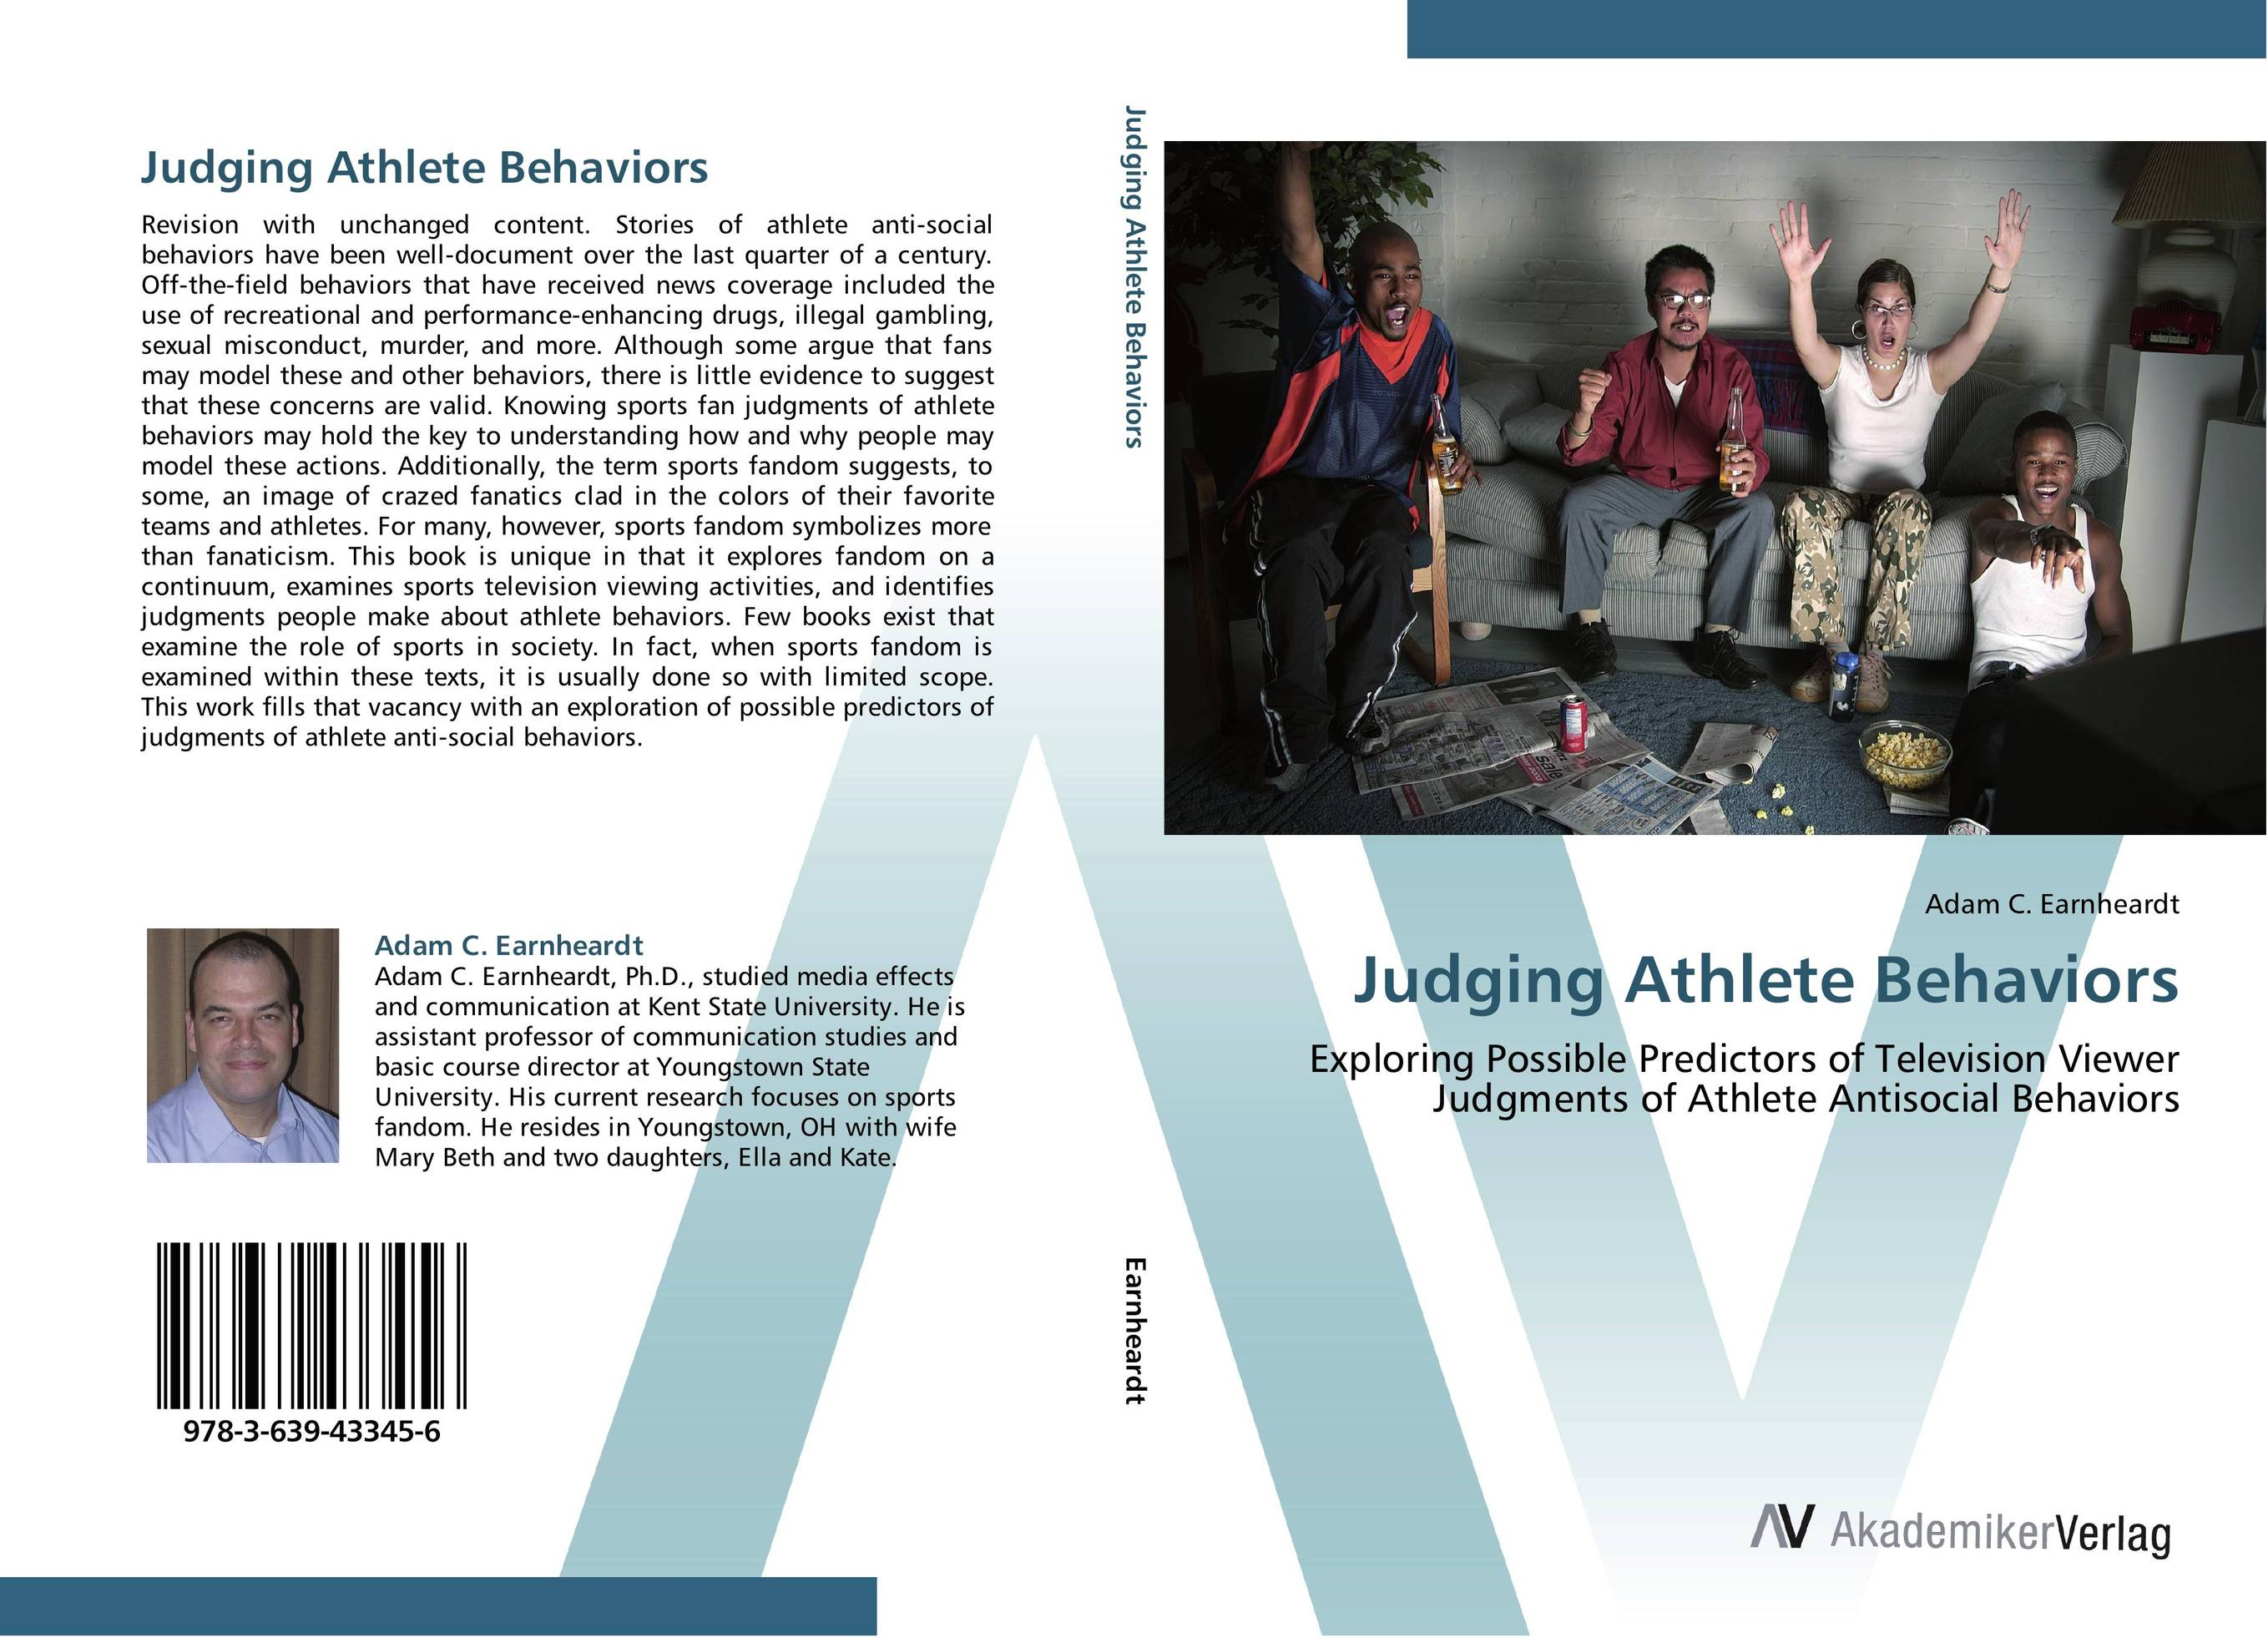 Judging Athlete Behaviors